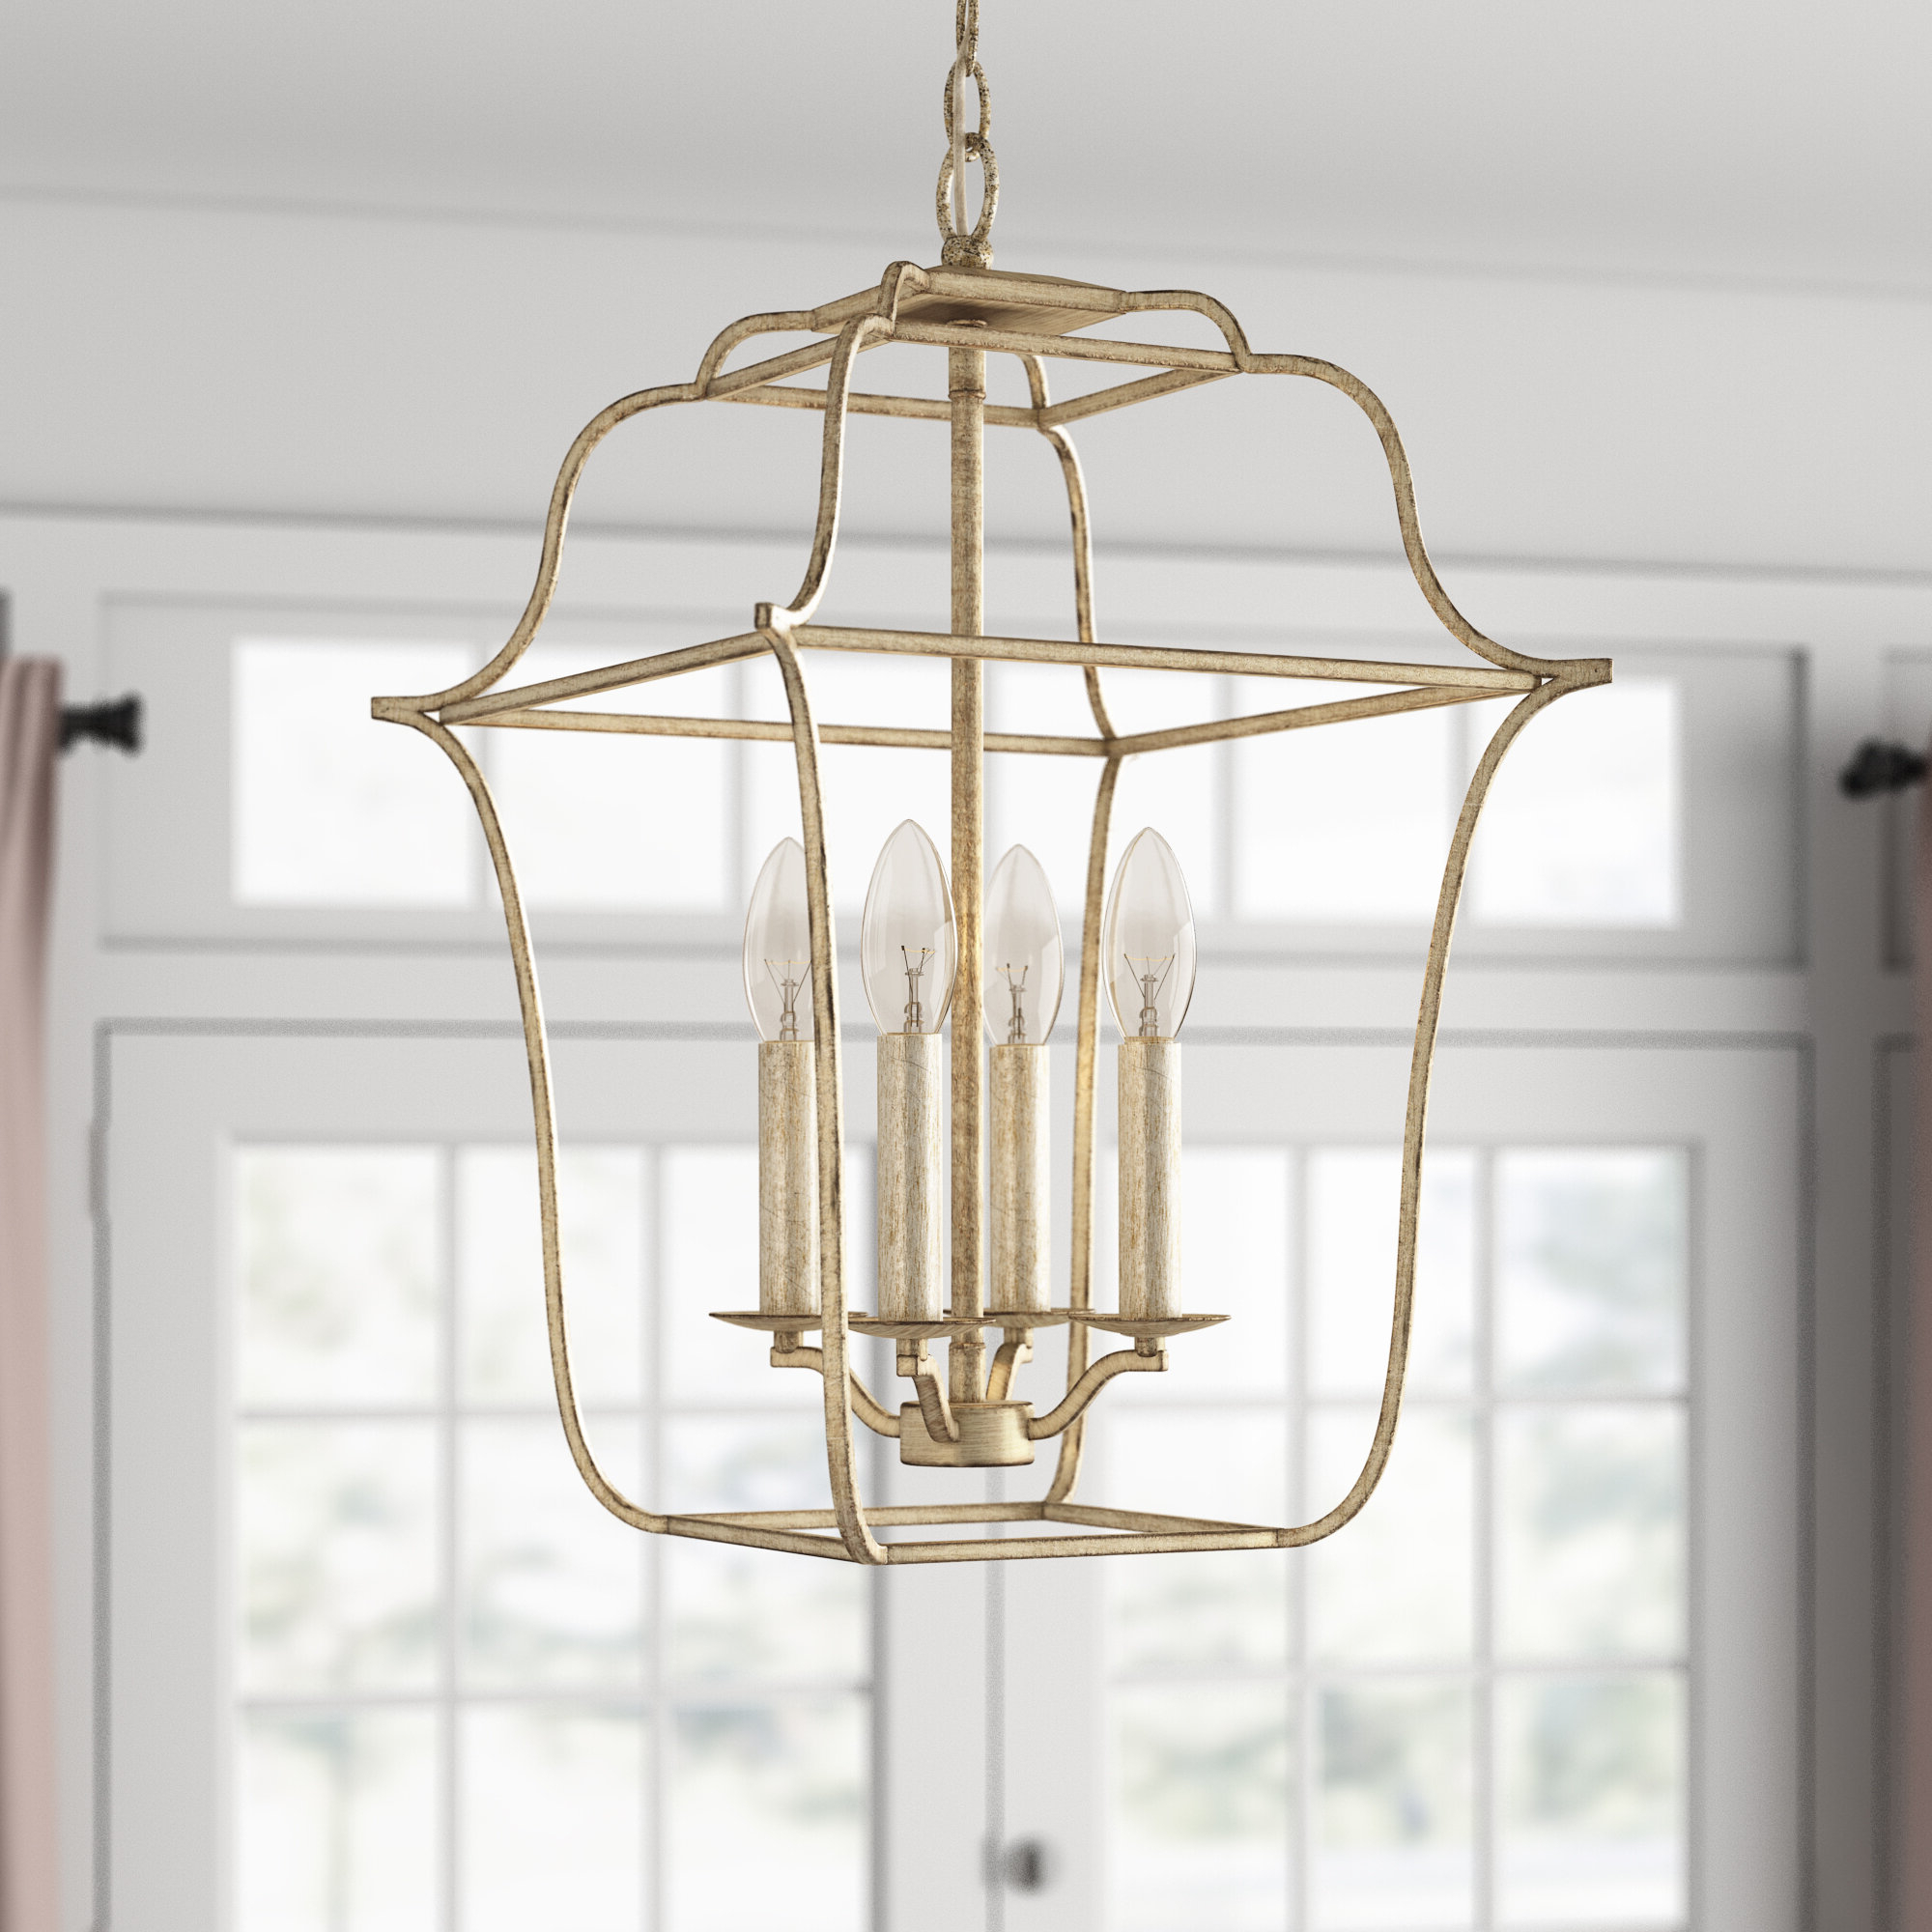 Armande 3 Light Lantern Geometric Pendants Throughout Well Known Chloe 4 Light Lantern Geometric Pendant (View 5 of 20)